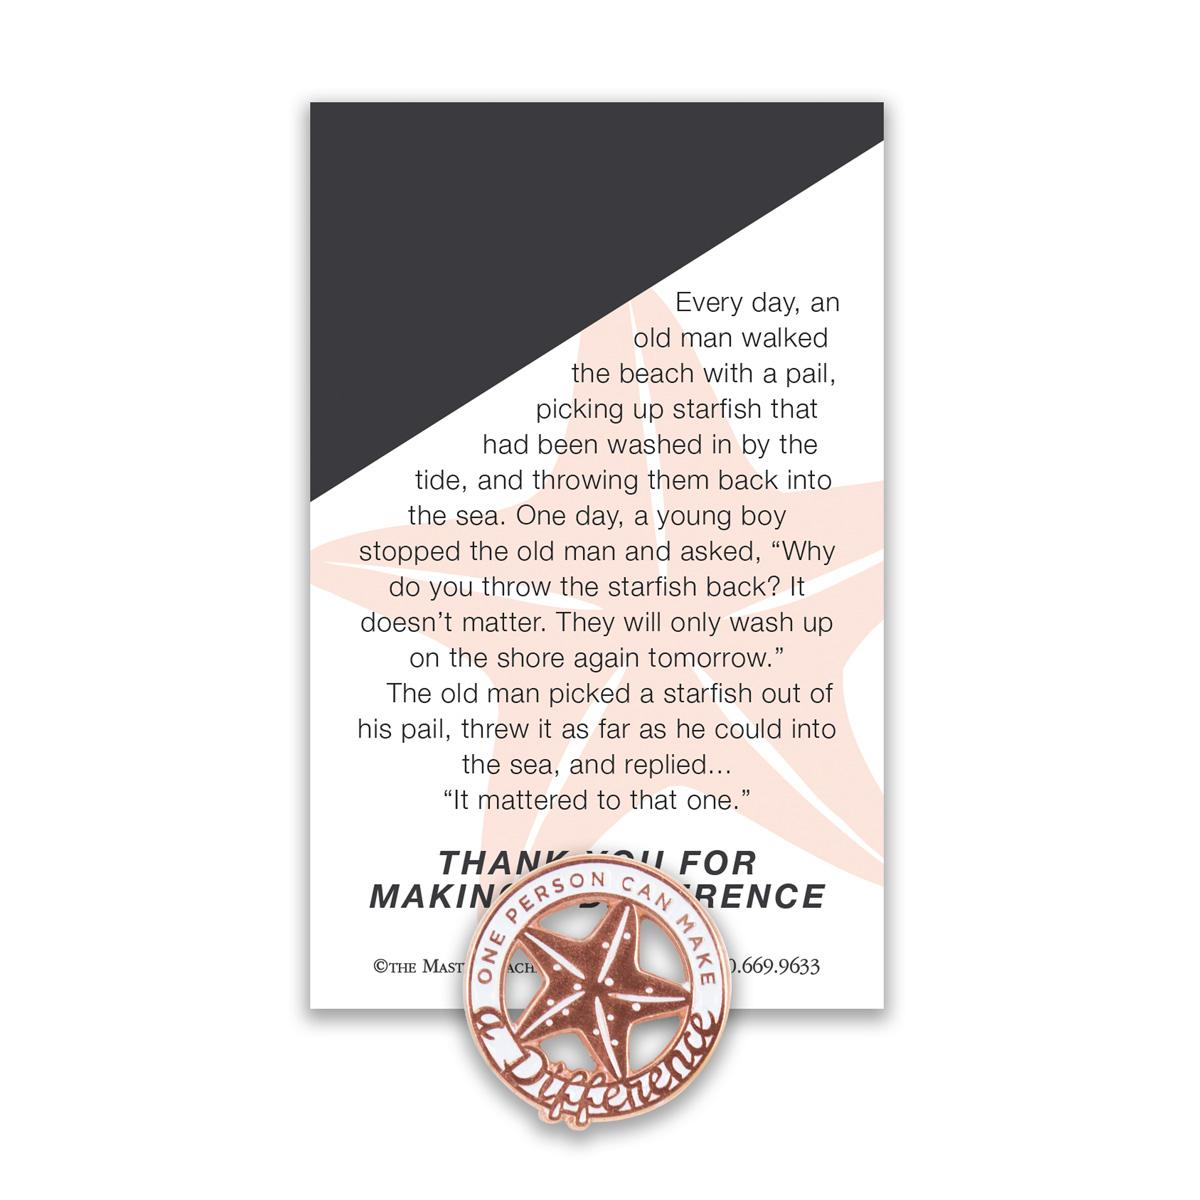 photograph relating to Starfish Poem Printable called The Starfish Tale Lapel Pin Trainer Popularity Pins at